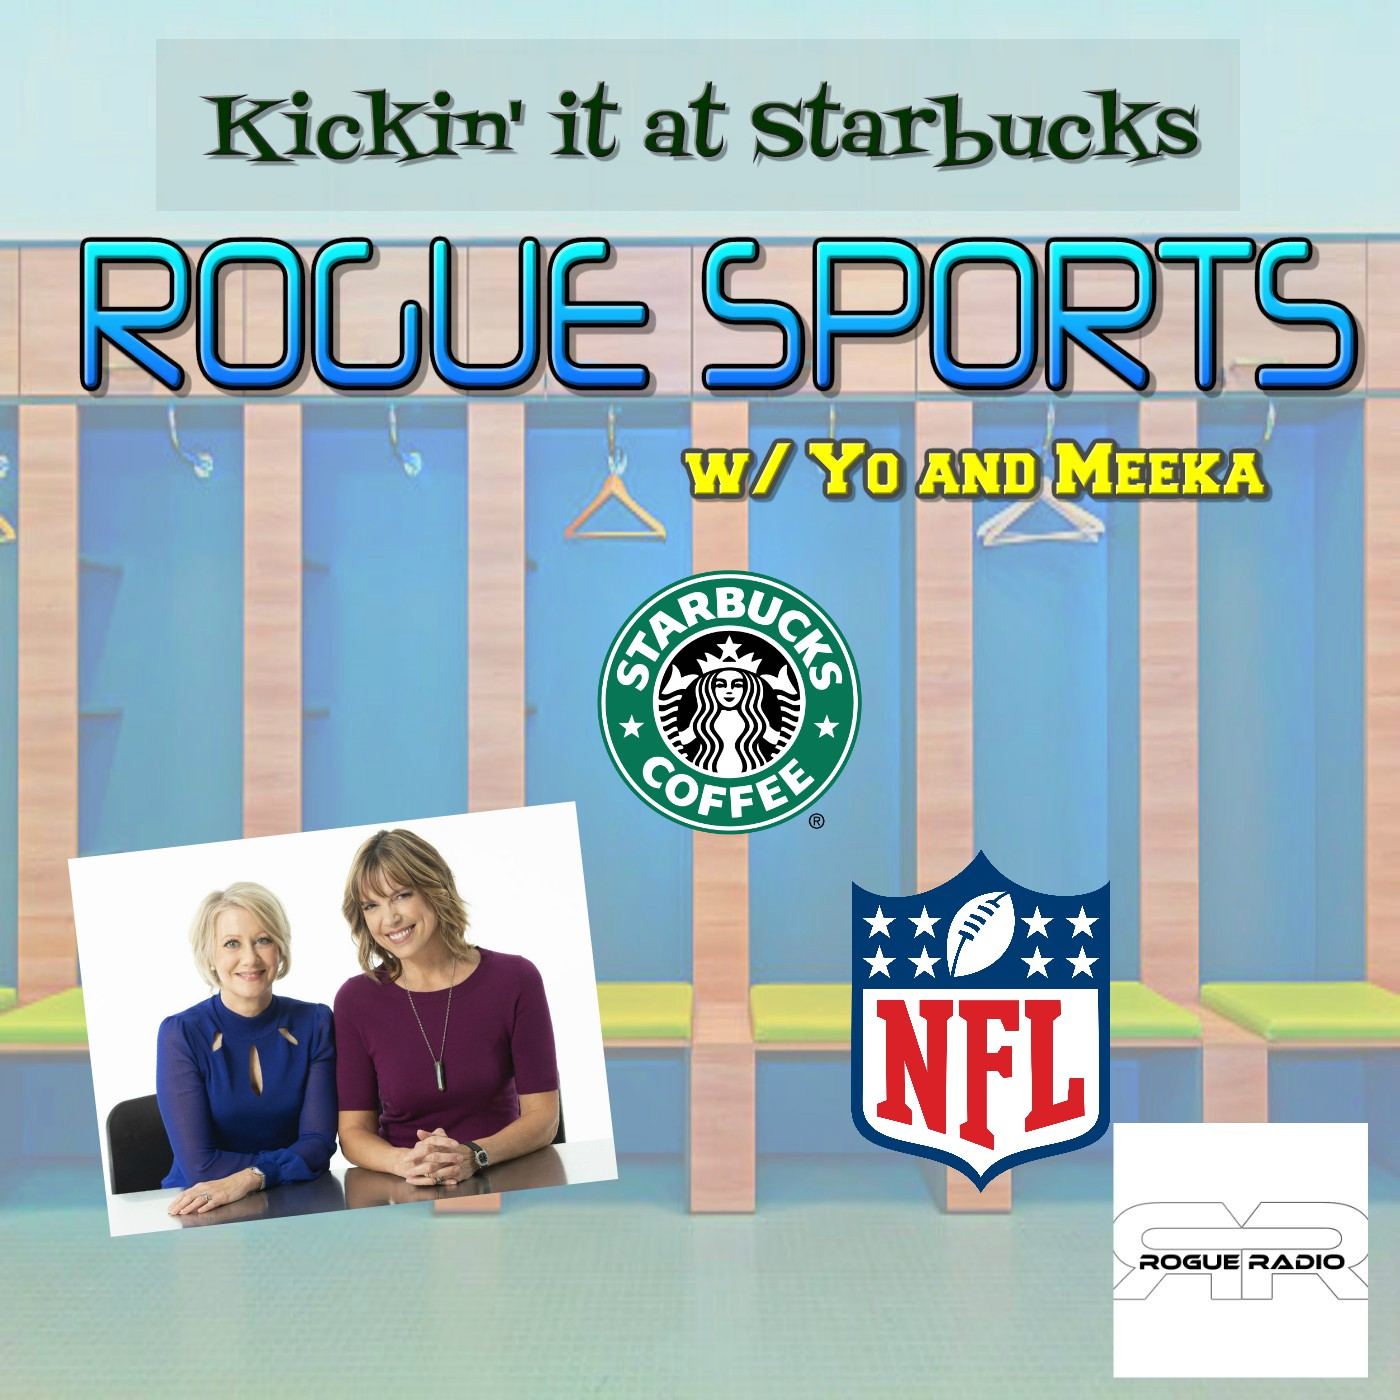 Rogue Sports 9_30.jpeg